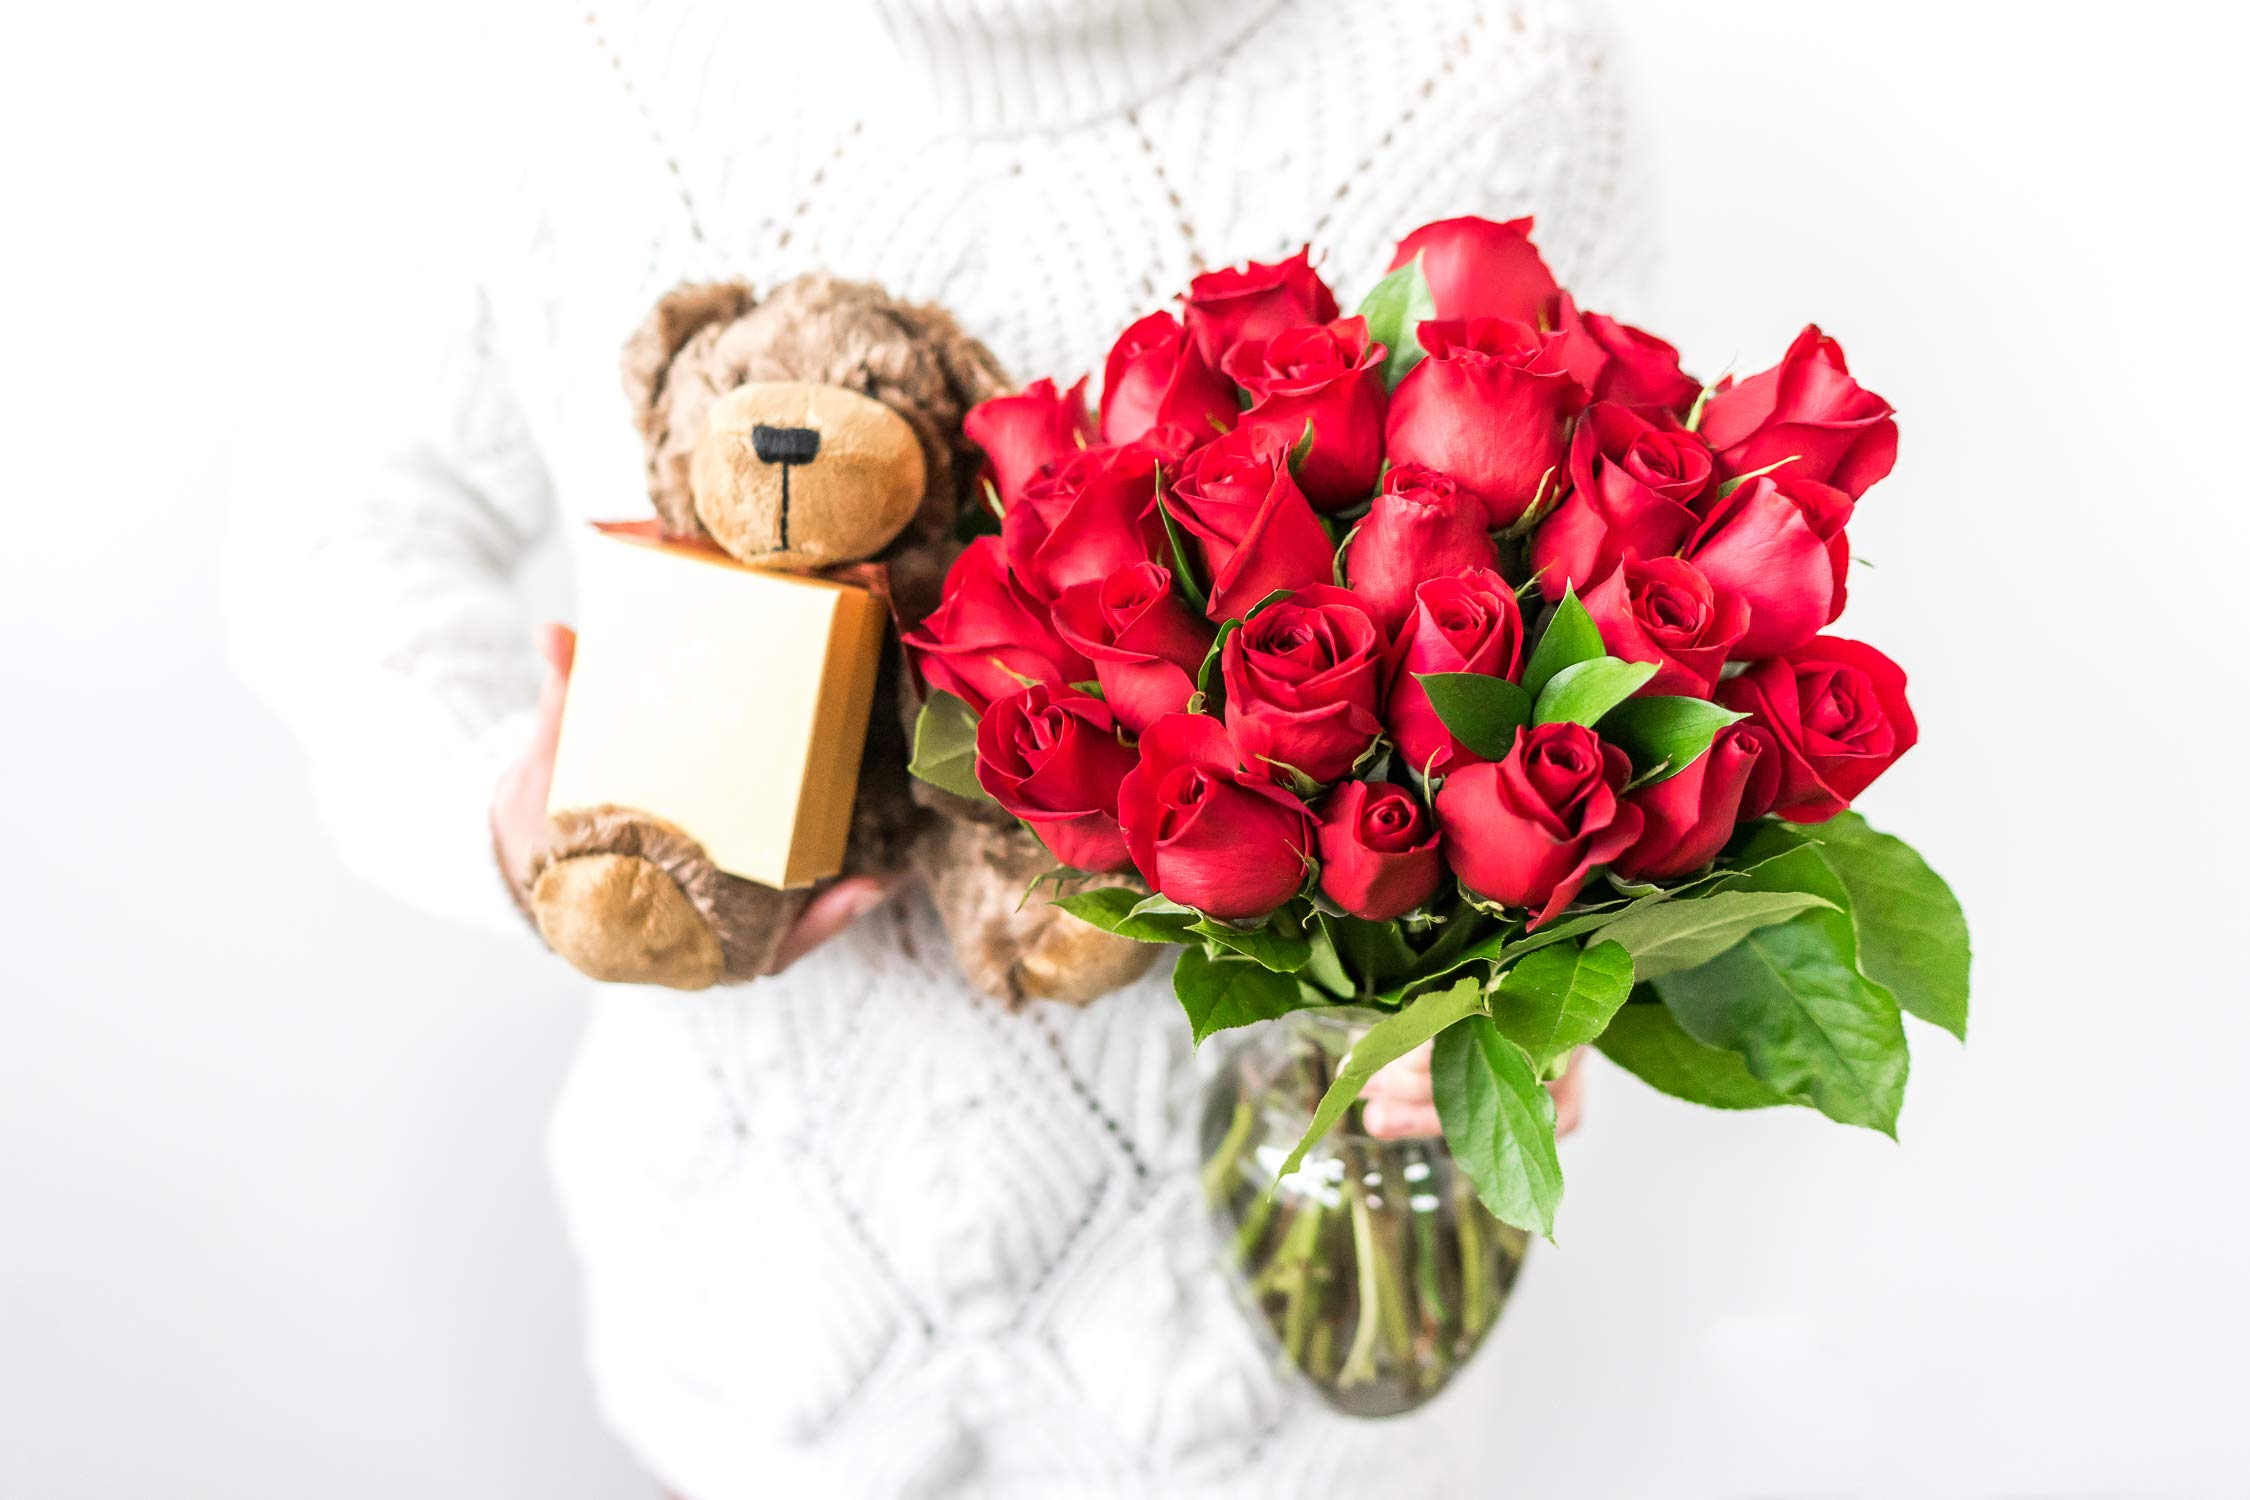 Flowers - Two Dozen Long Stemmed Red Roses with Godiva Chocolates & Bear (Free Vase Included) by From You Flowers (Image #5)